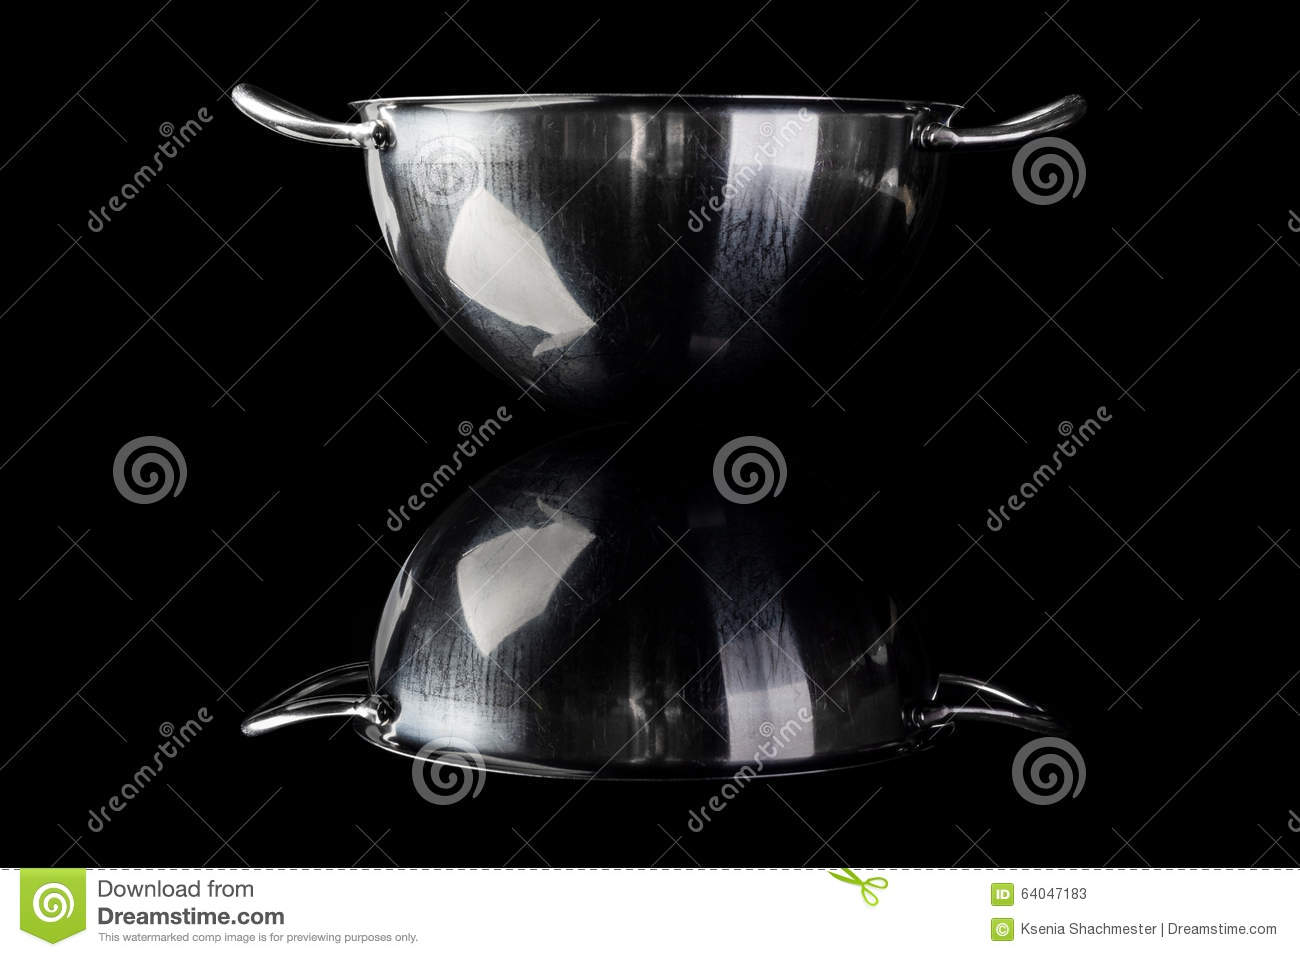 Stainless steel bowl from side on black with reflection